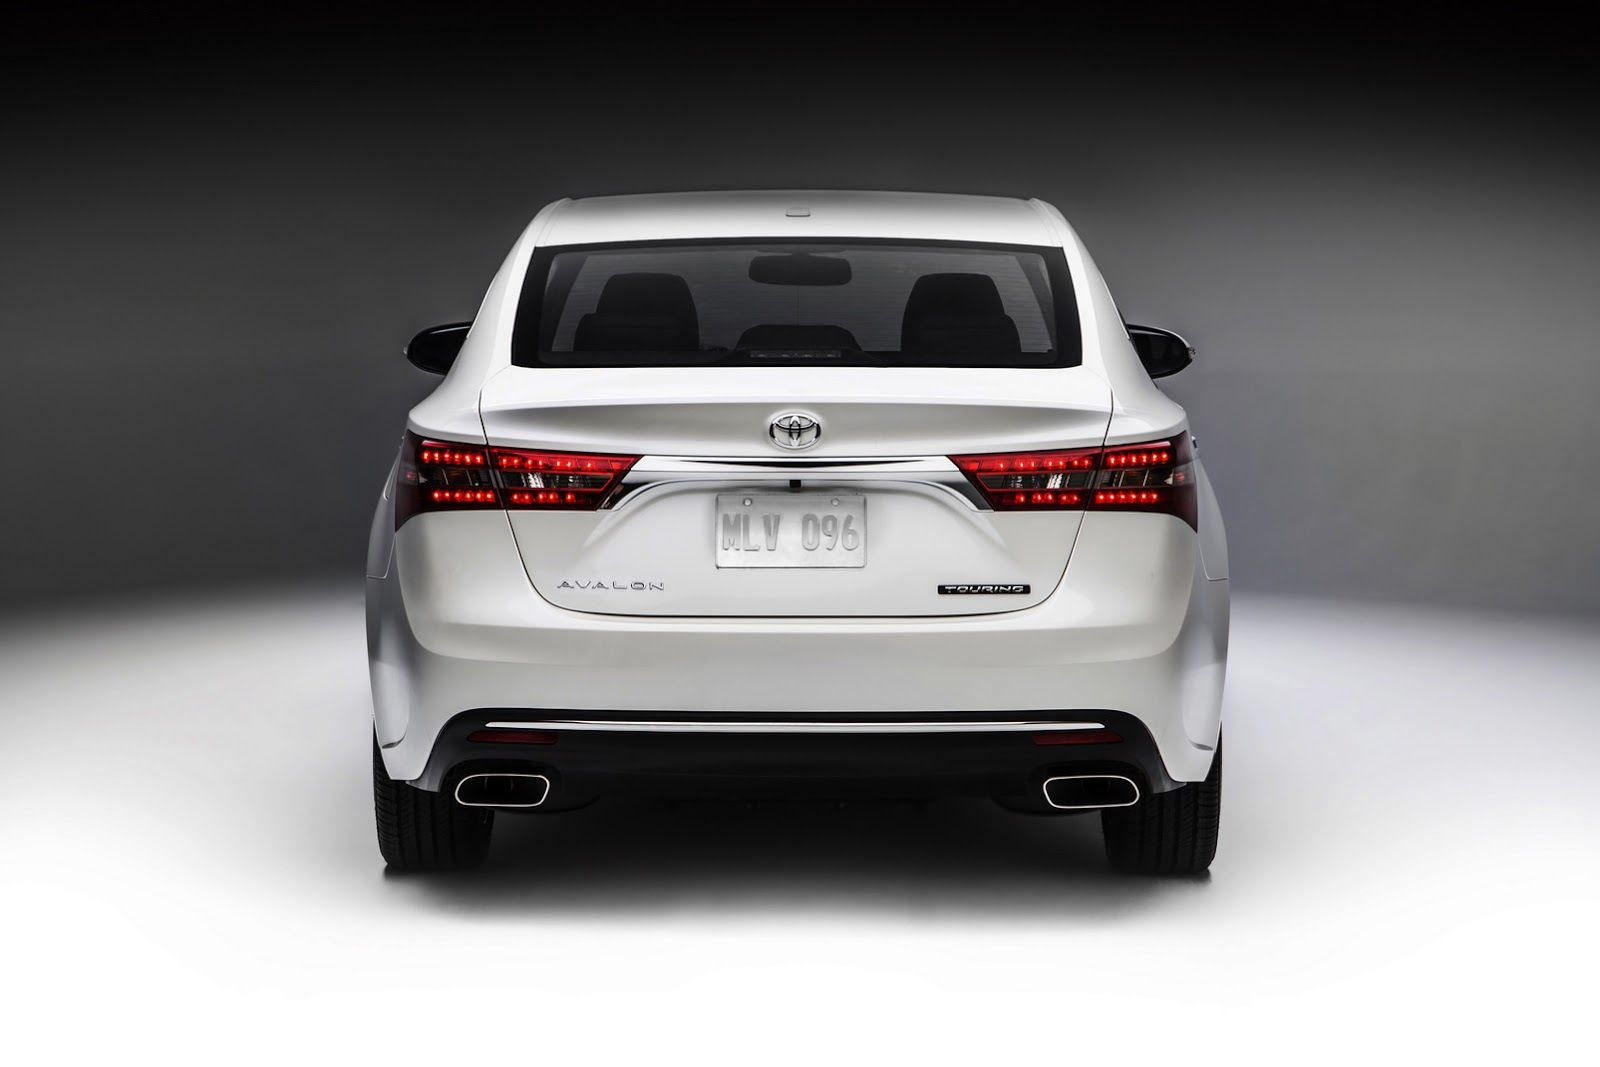 2018 Toyota Avalon Redesign 2018 Car Review Intended For 2018 Toyota